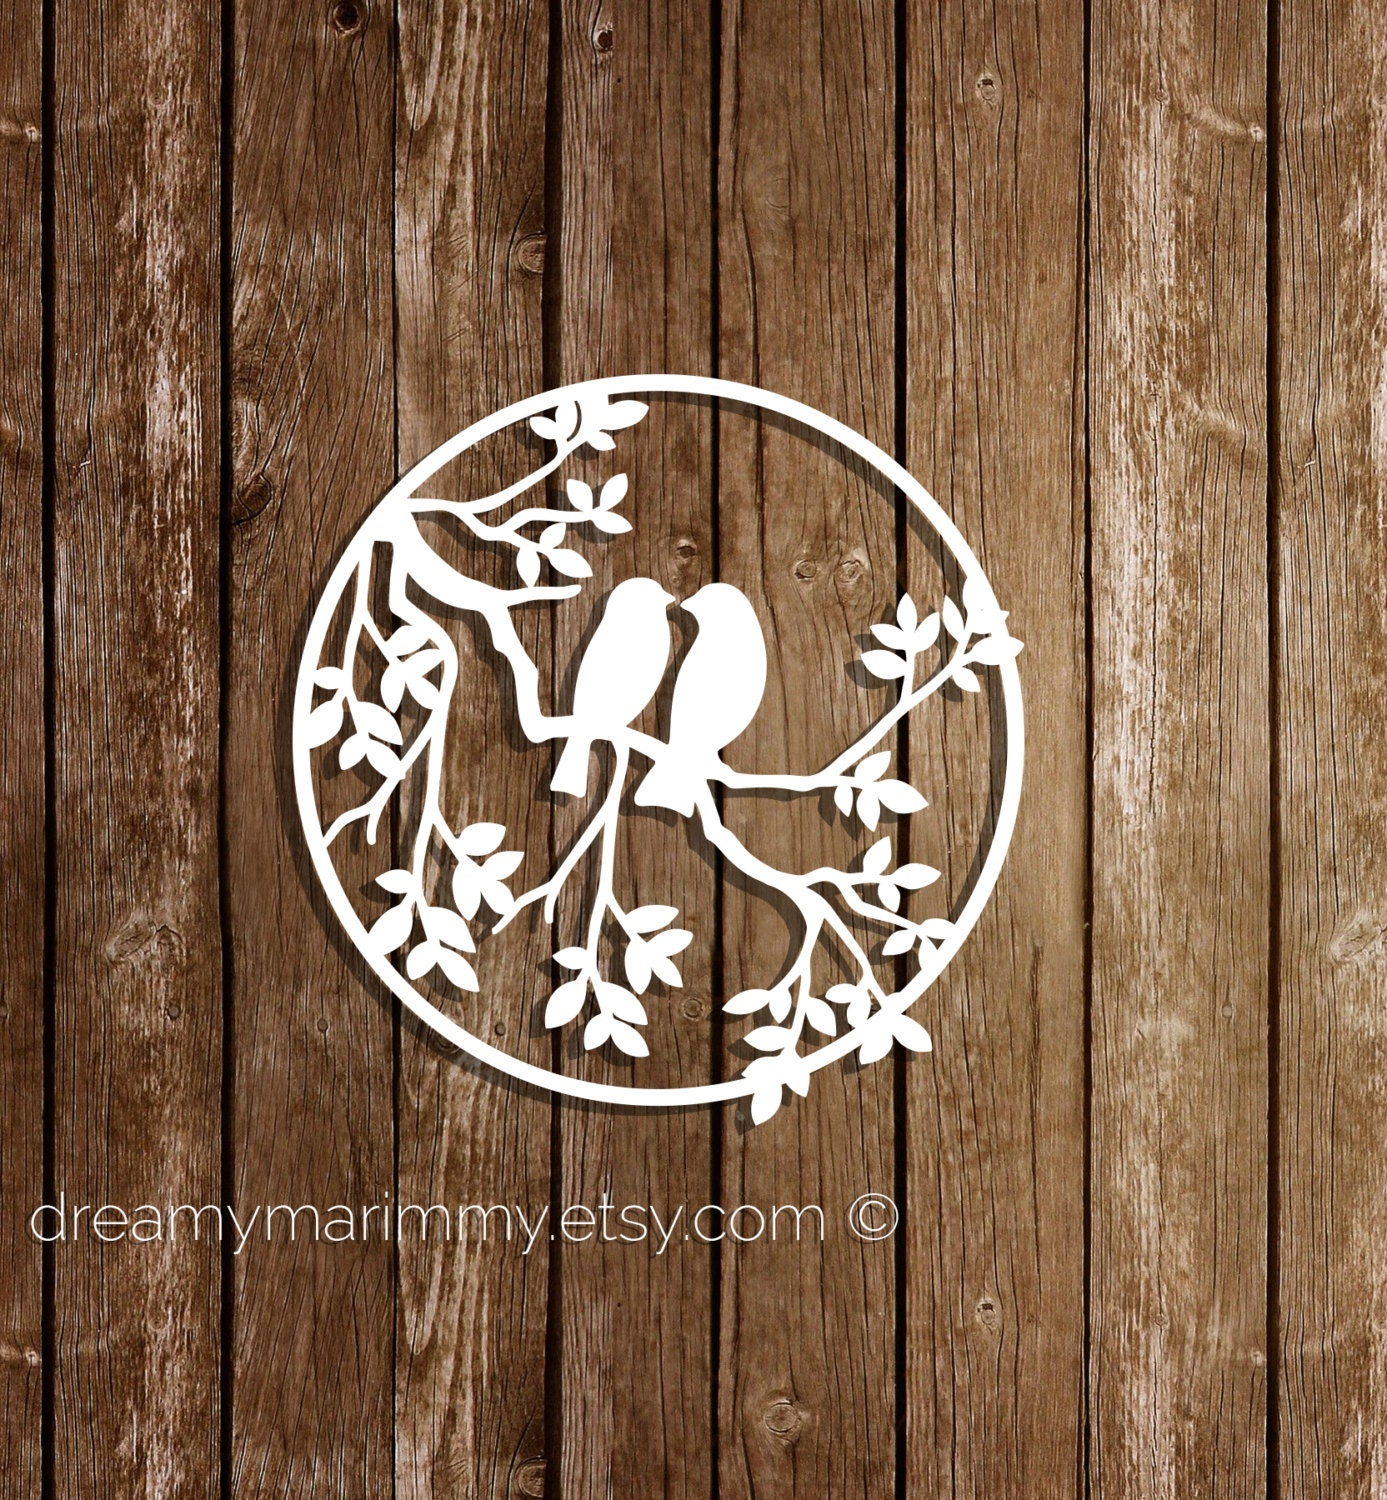 paper cut out art templates - paper cutting templates love images